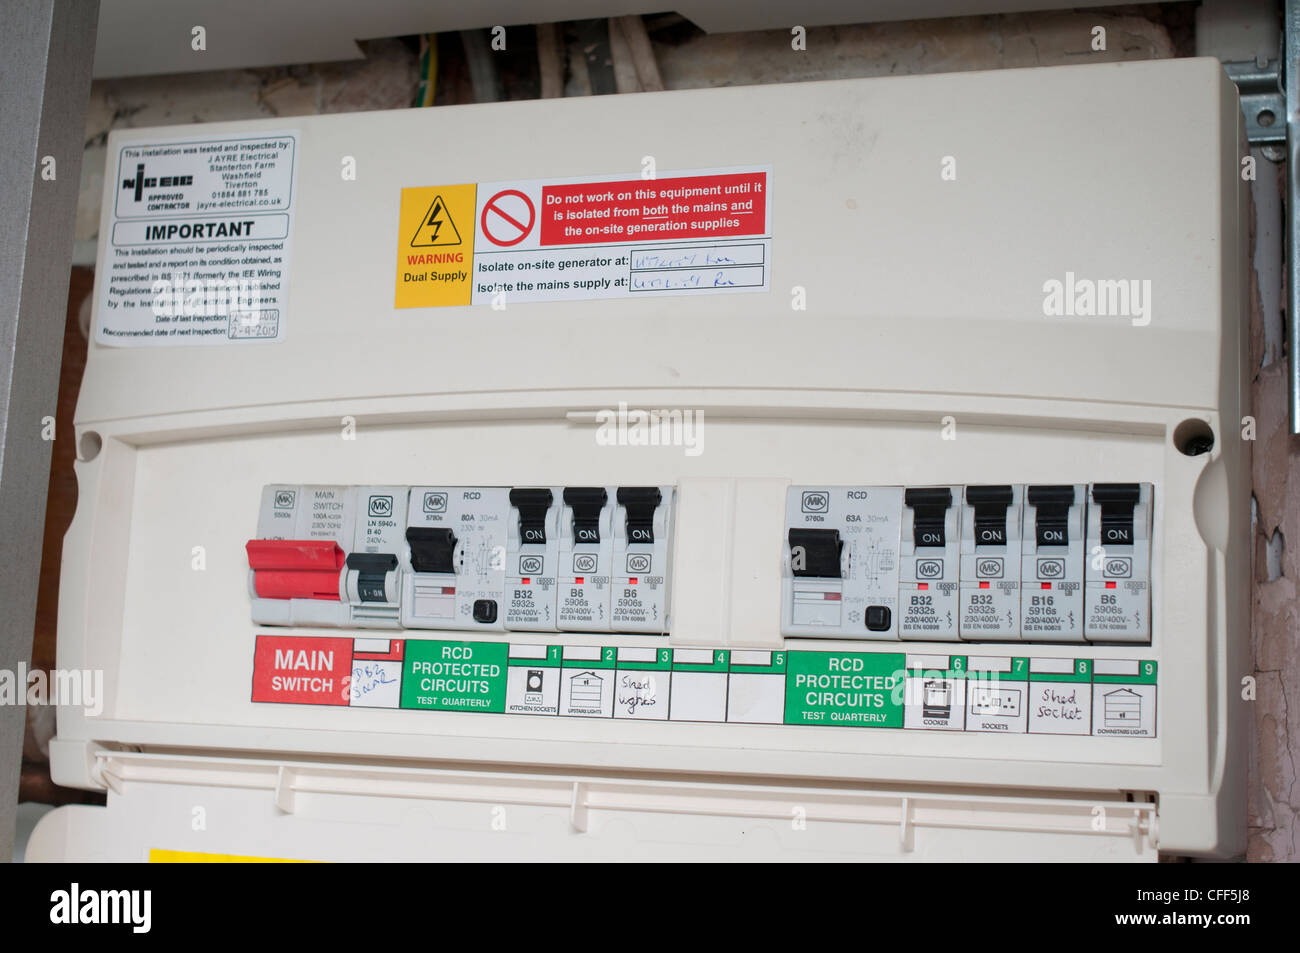 hight resolution of domestic fuse box stock photo 43974288 alamydomestic fuse box